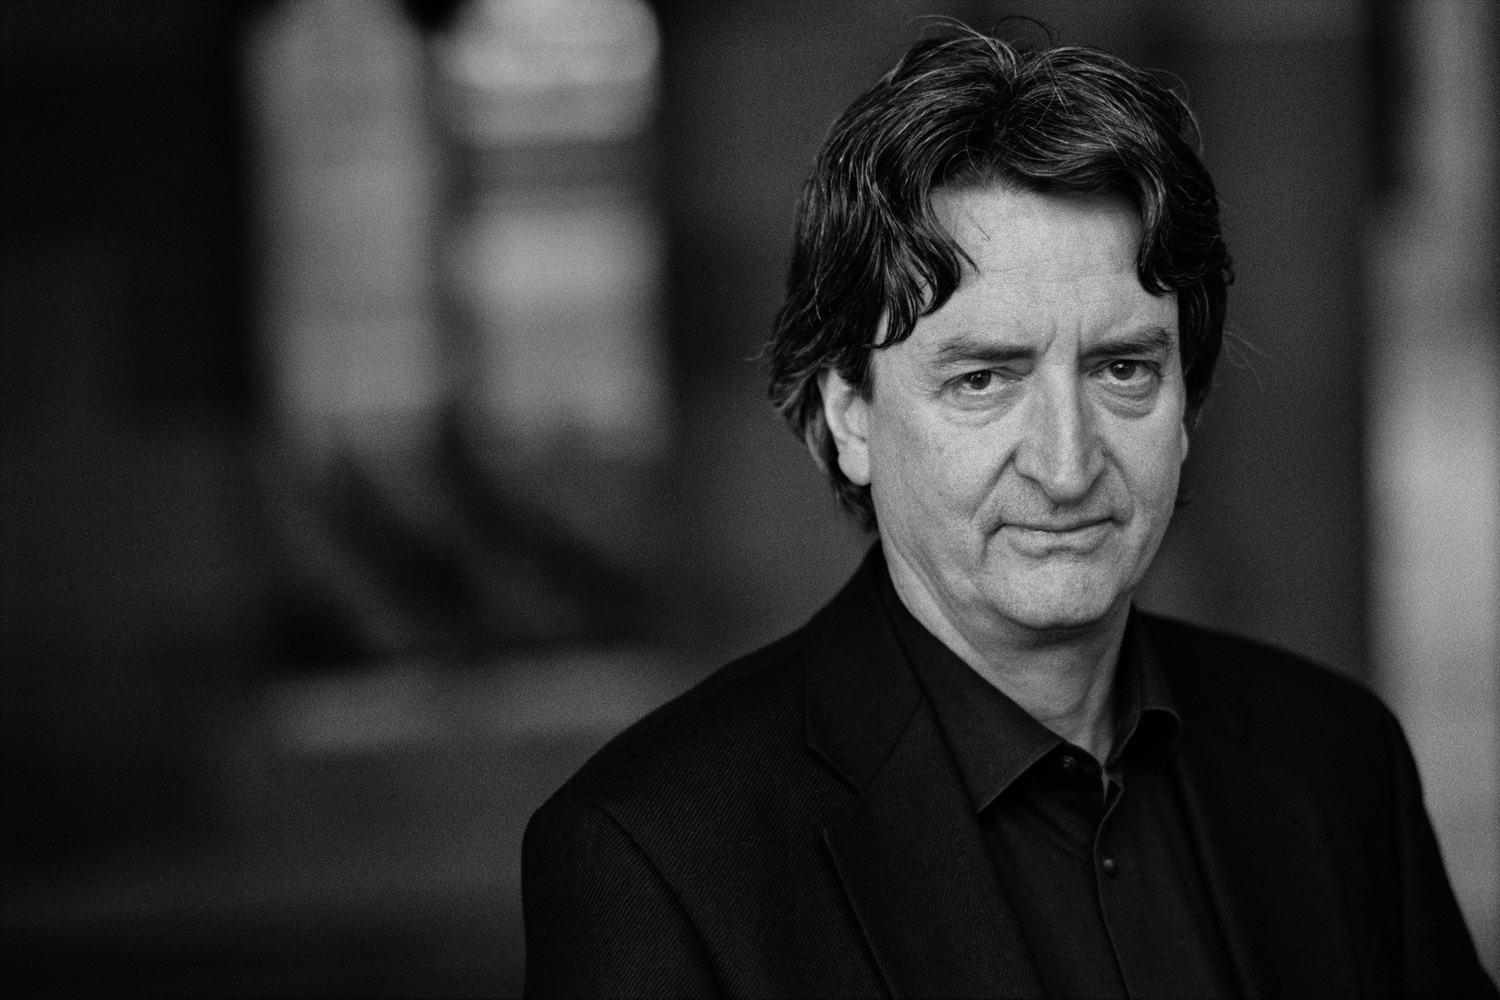 Andreas Müller  dipl. Architekt ETH SIA  am@andreasmueller.ch  044 440 59 00